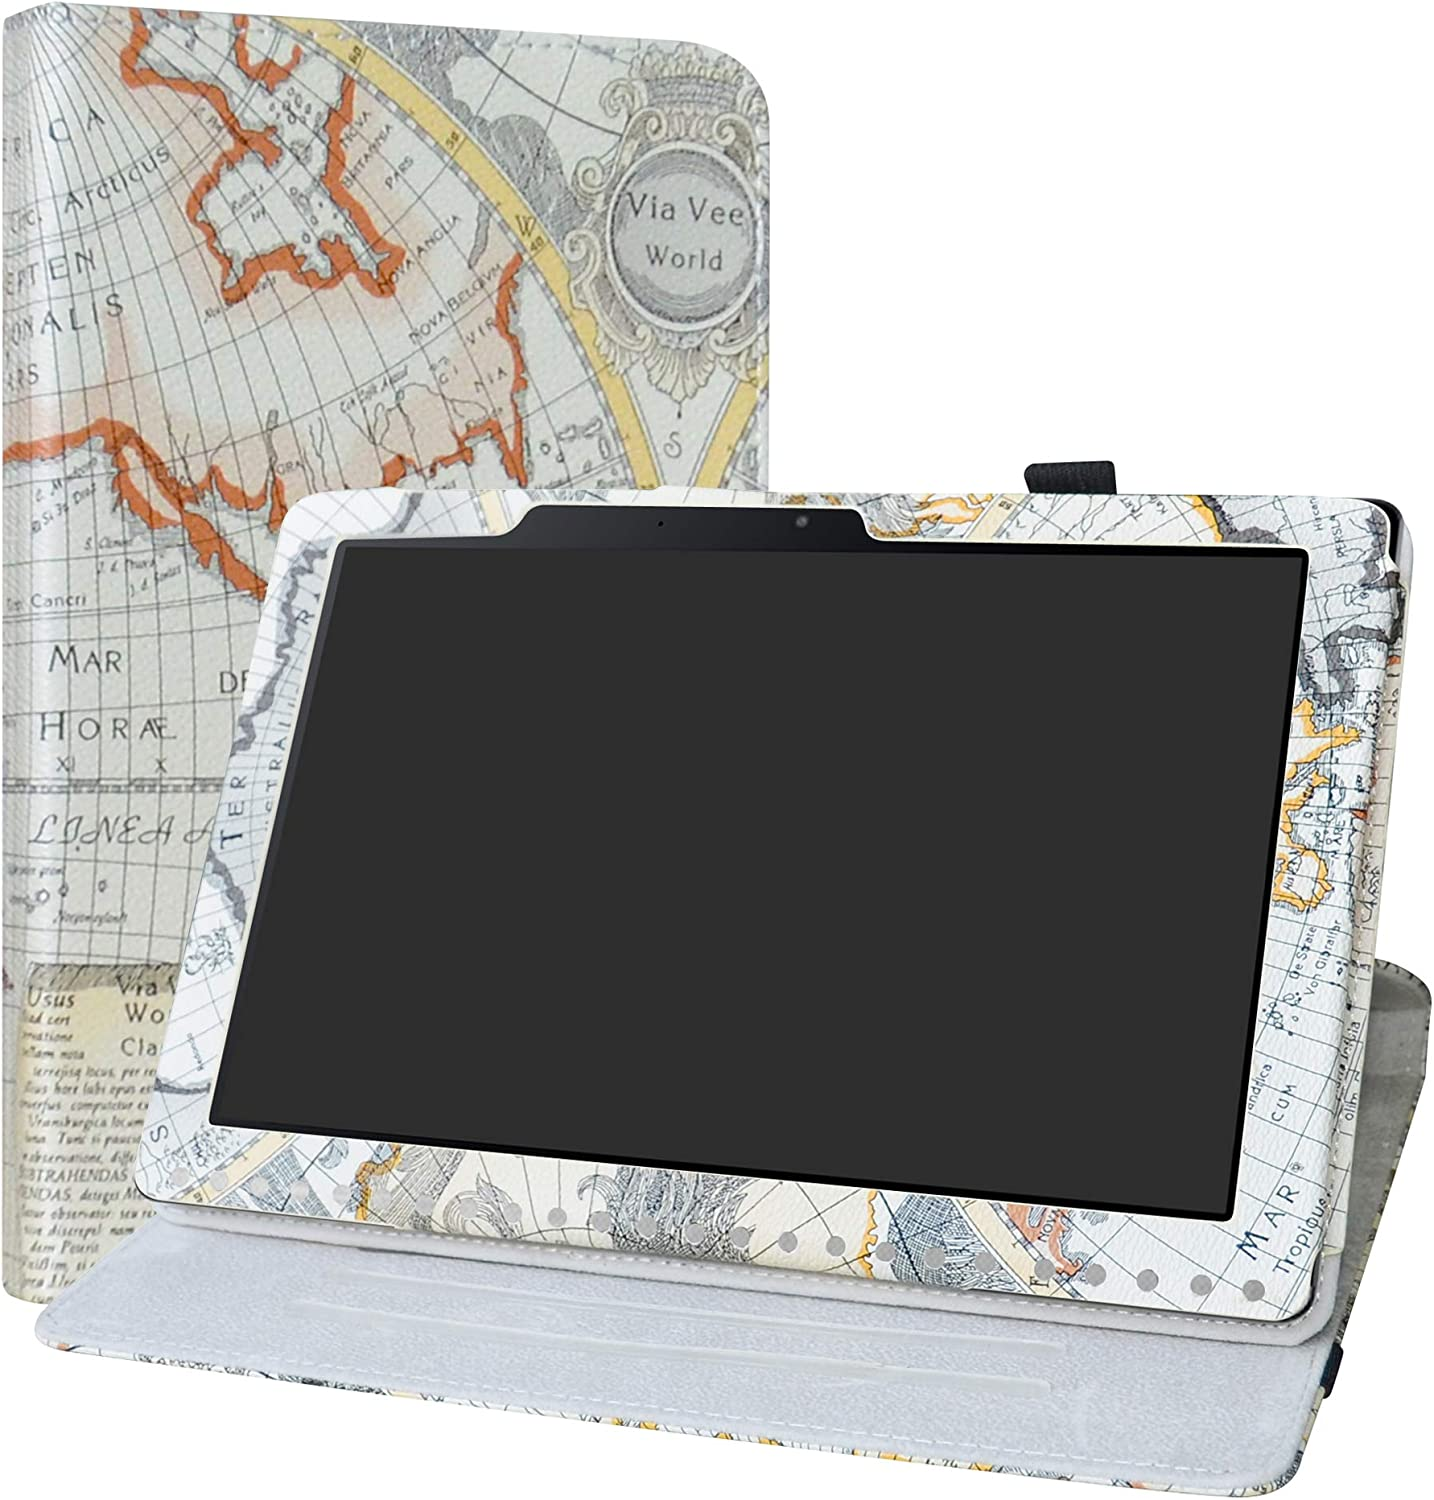 """Iconia One 10 B3-A50 Rotating Case,LiuShan 360 Degree Rotation Stand PU Leather with Cute Pattern Cover for 10.1"""" Acer Iconia One 10 B3-A50 Android Tablet,Map White"""